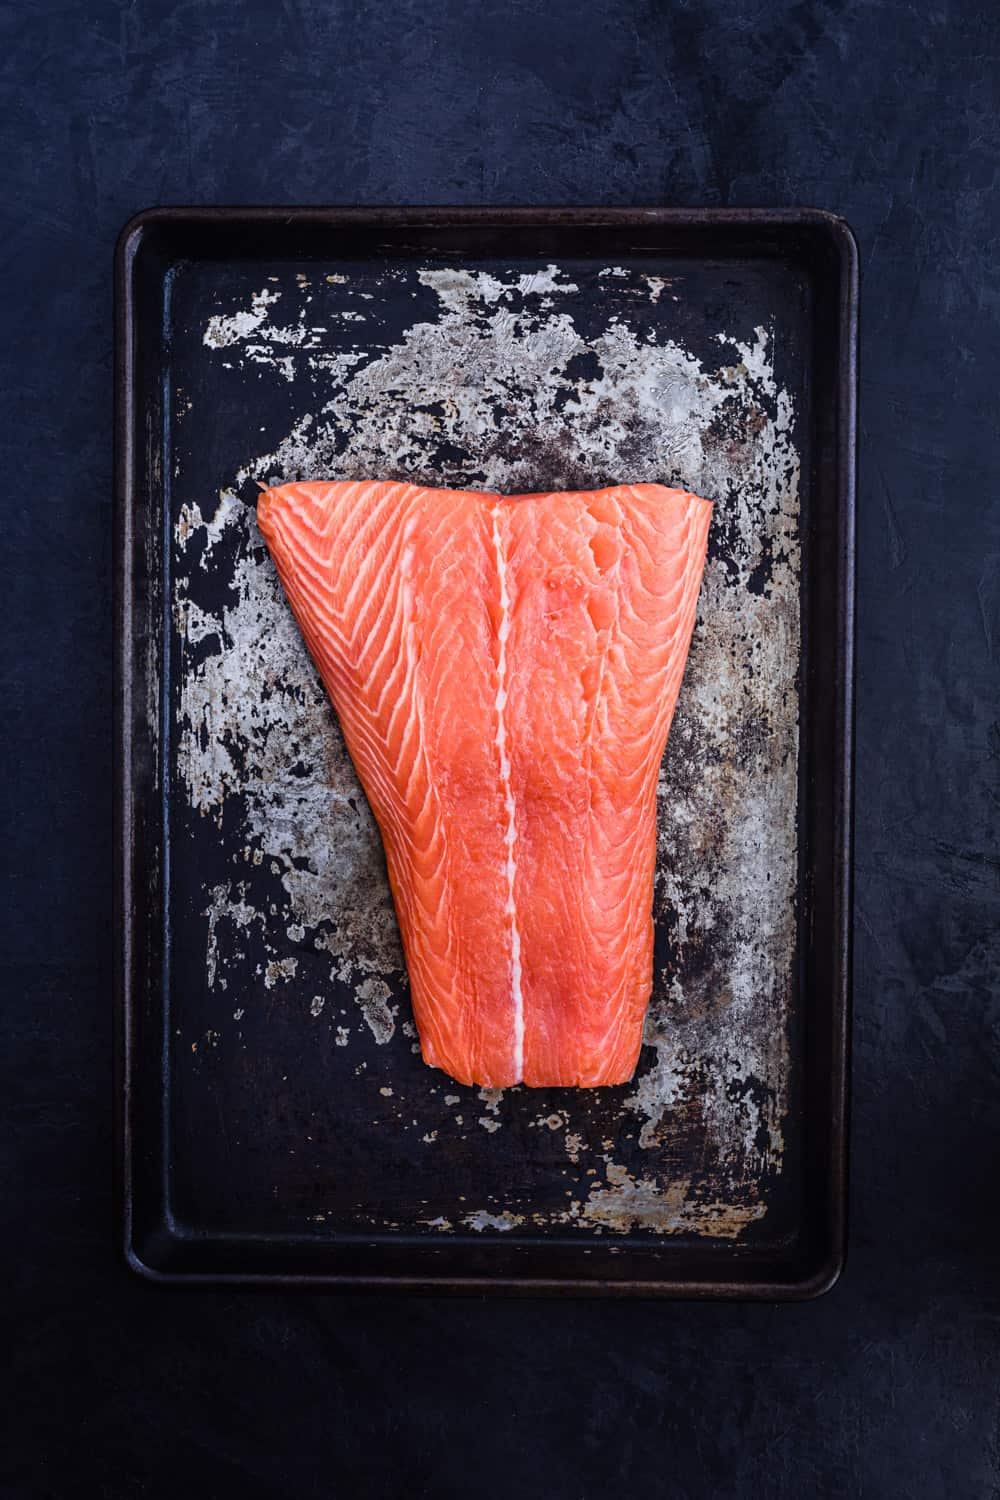 In process shot of the salmon fillet on a cookie sheet, ready for the next steps.